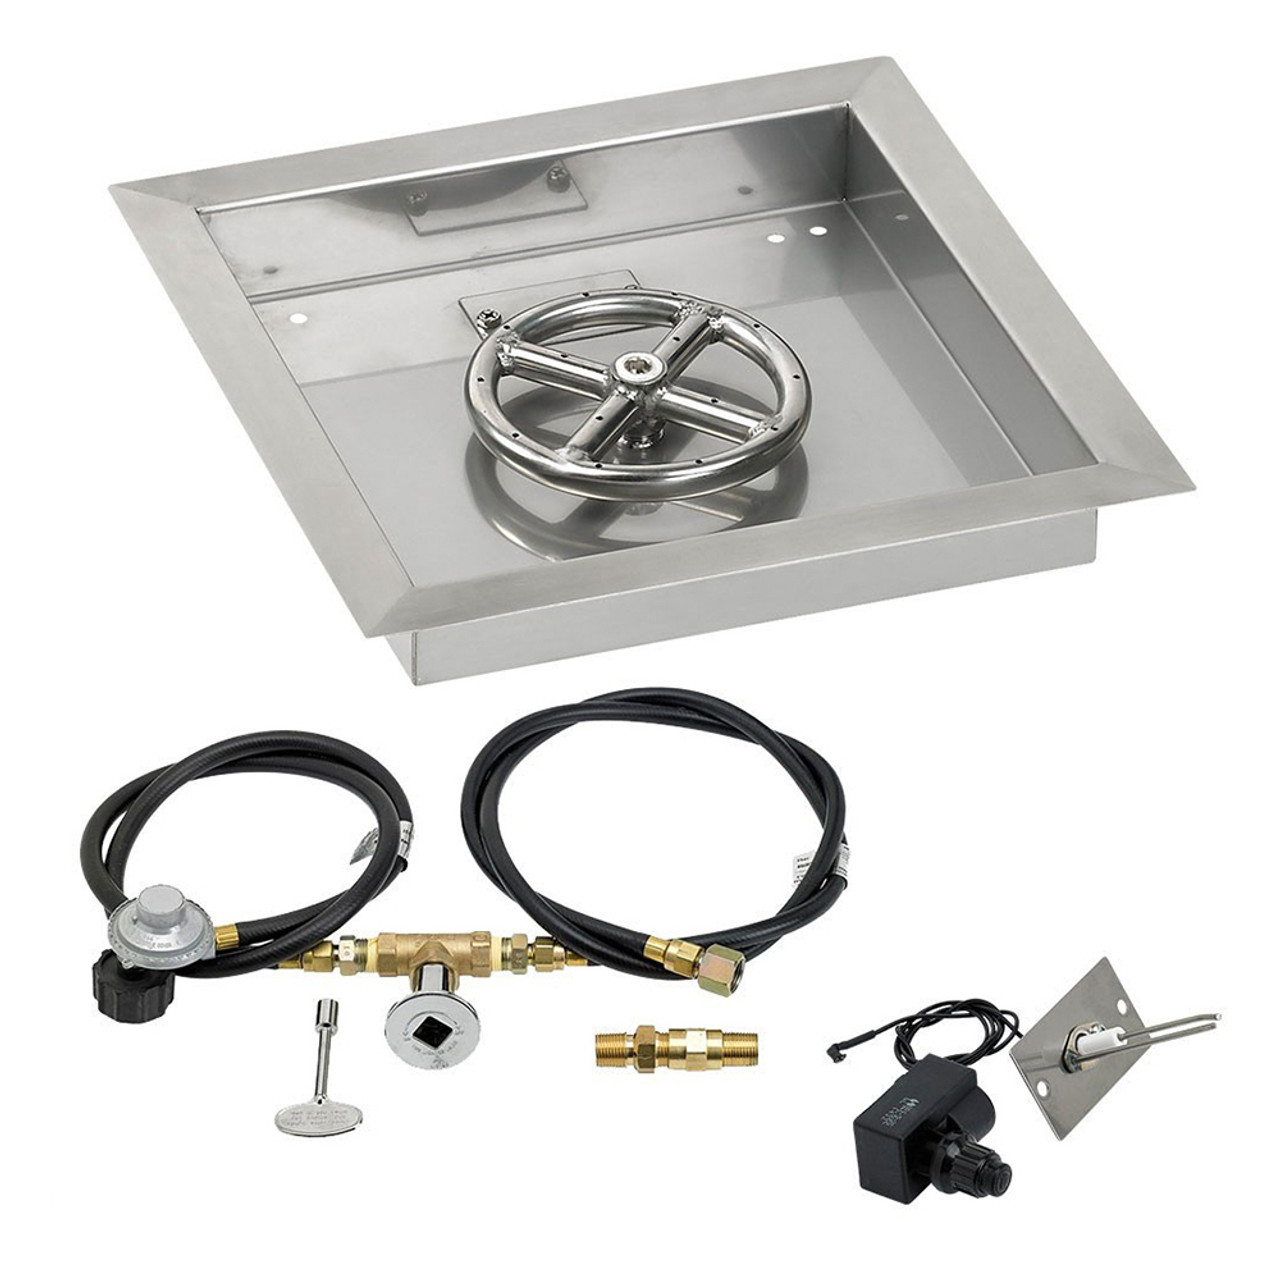 Gas Connections and Spark Ignition System Propane Version American Fireglass Square Gas Fire Pit Drop in Pan with Burner